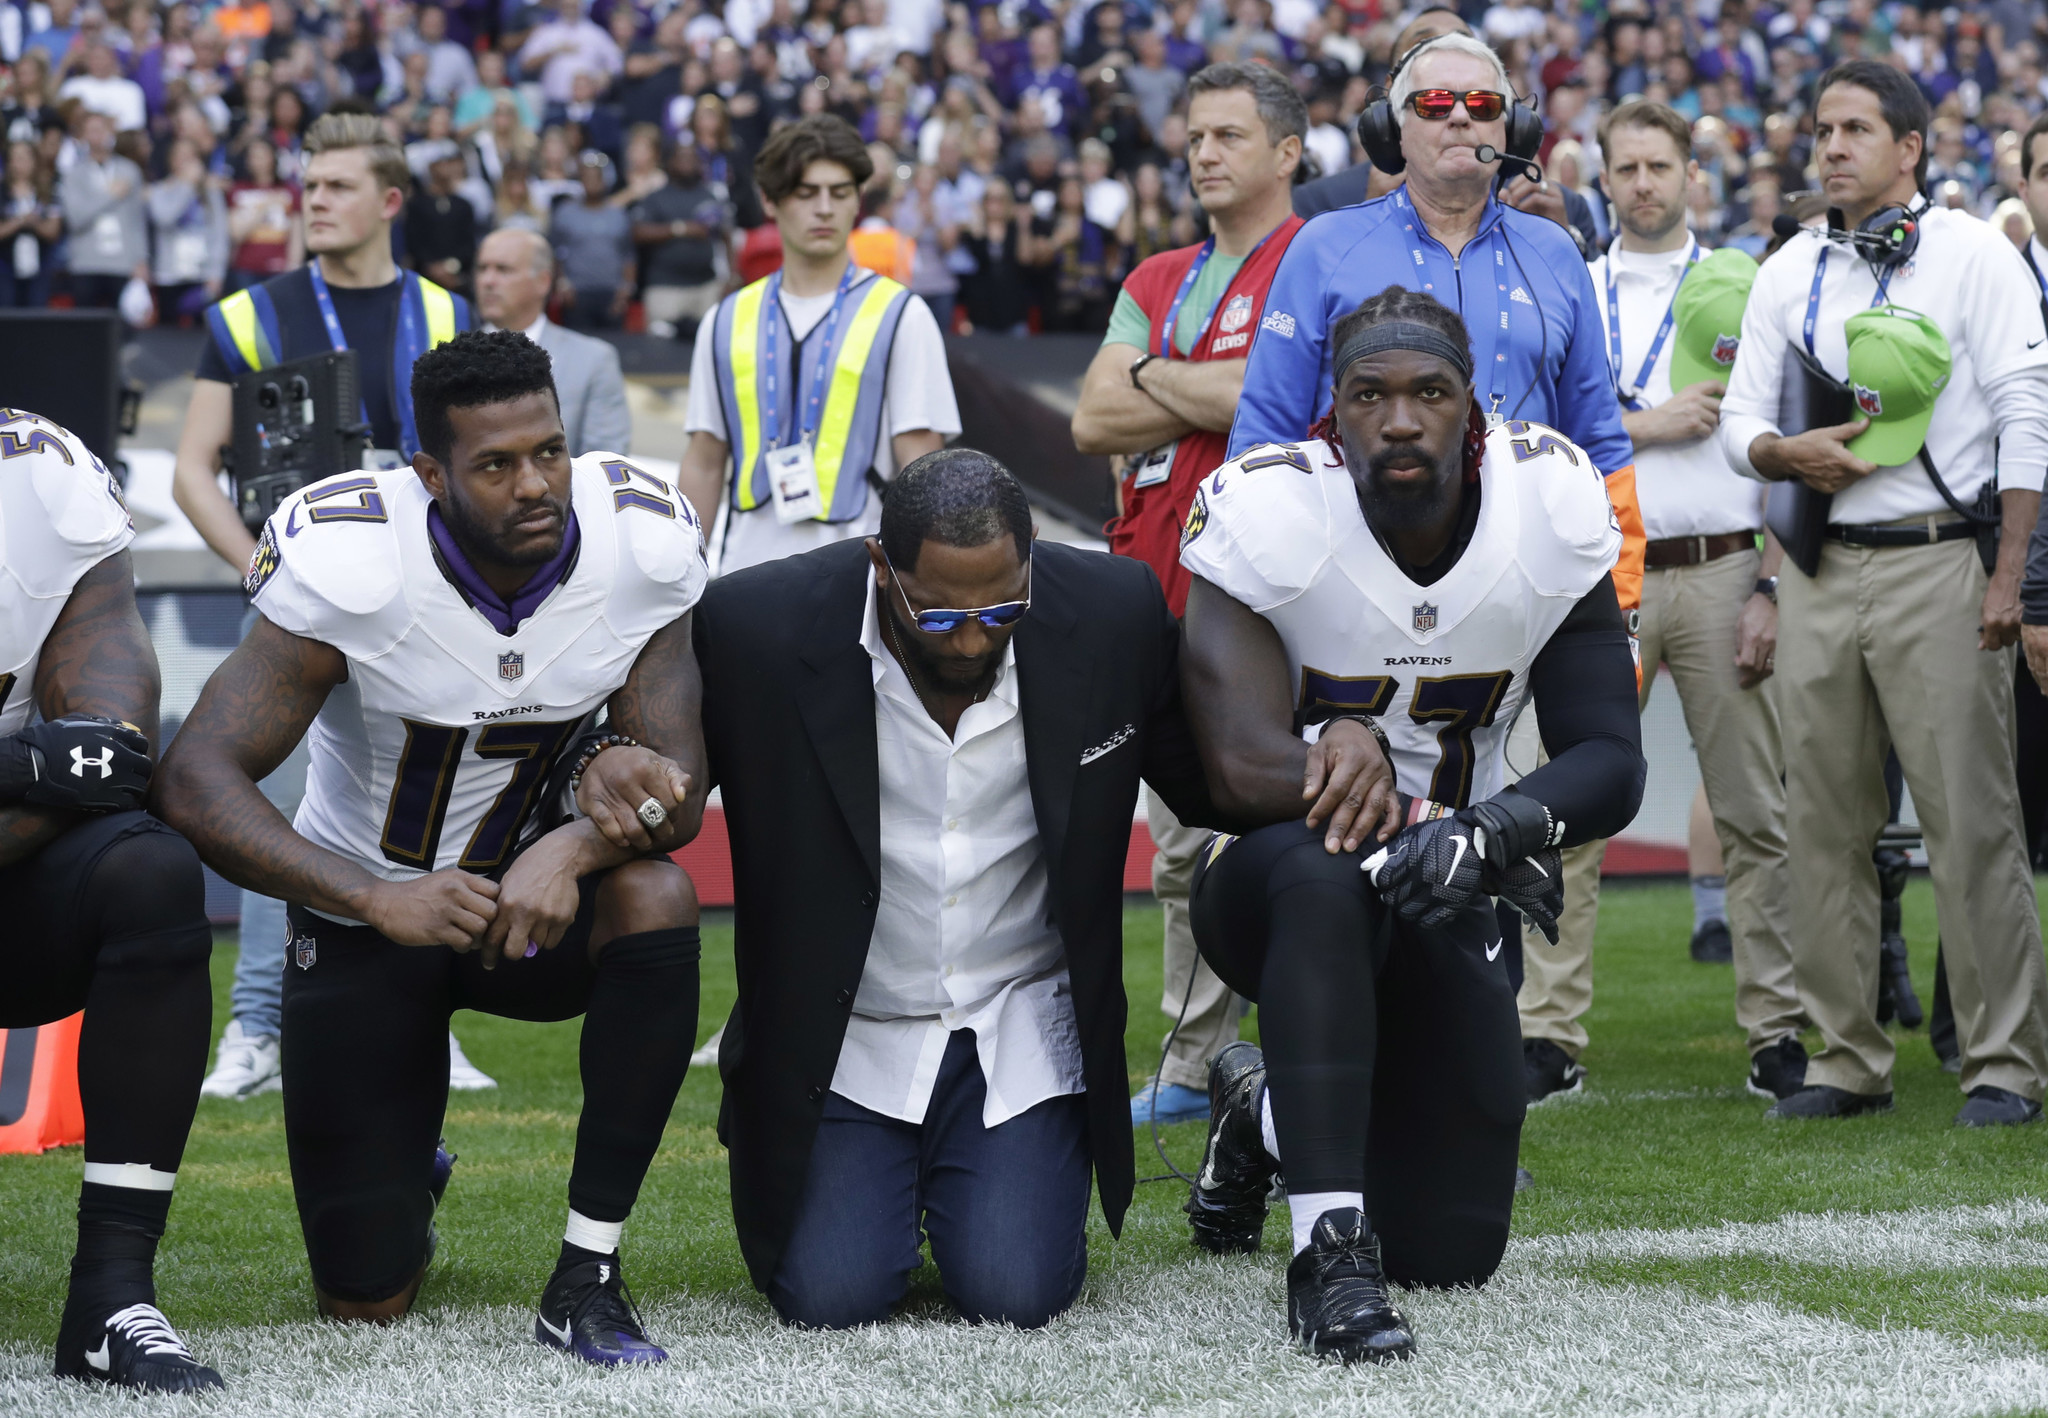 d03afbd8a76 Some Ravens and Jaguars take knee during national anthem in wake of  comments by President Trump